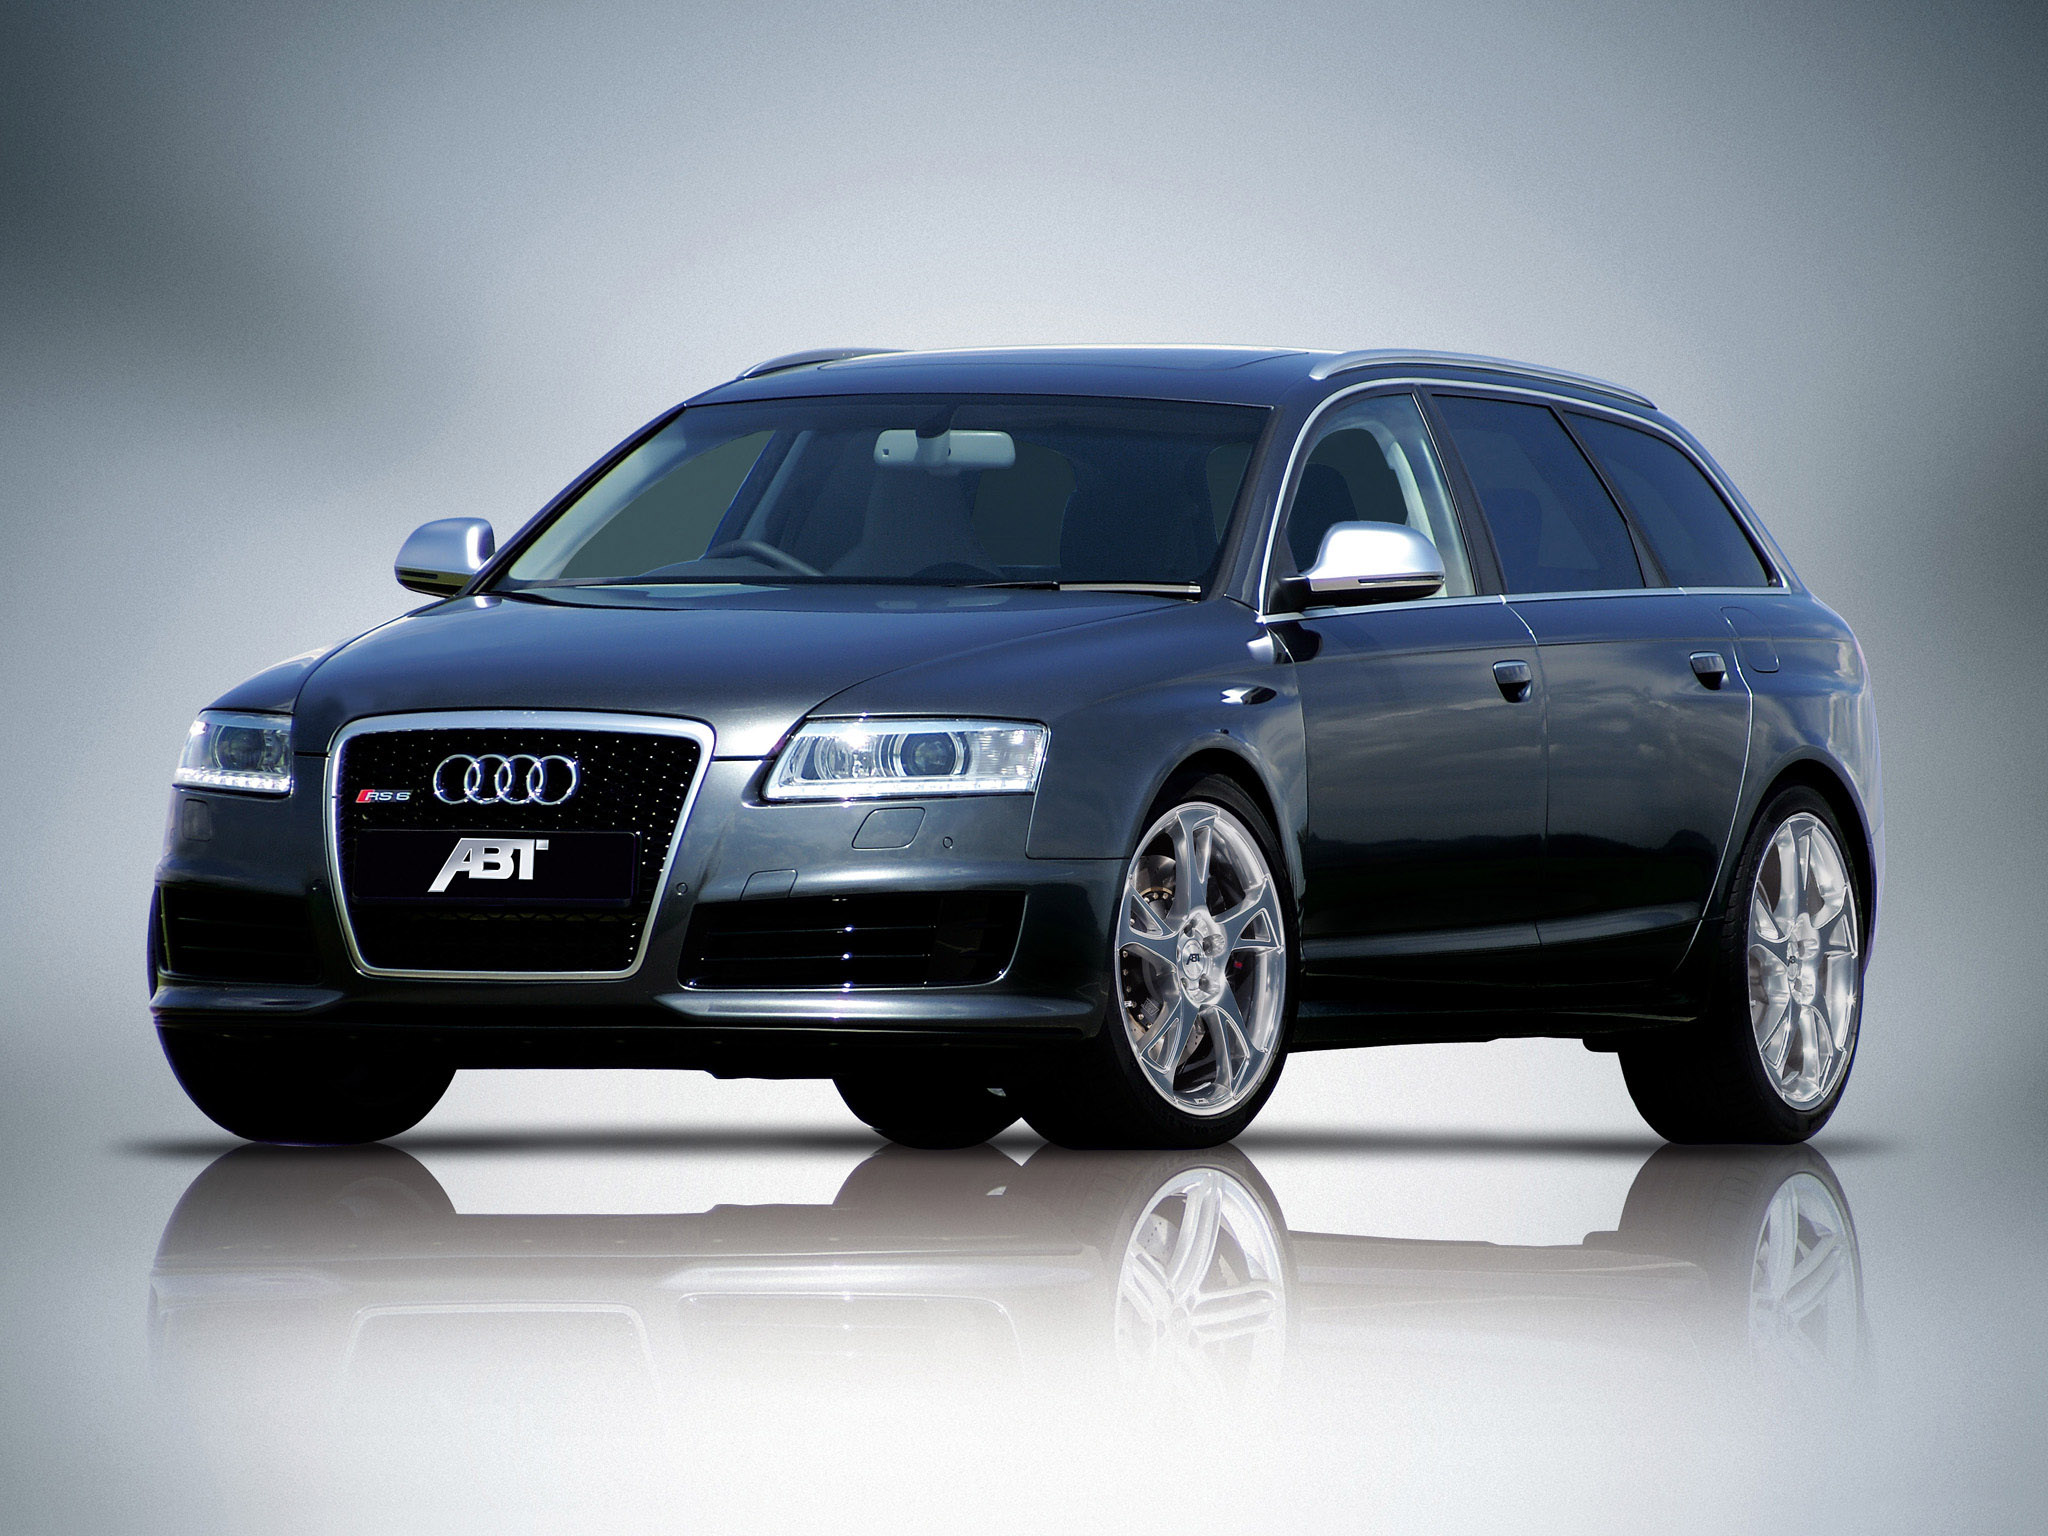 abt sportsline audi rs6 avant 4f c6 2008 abt sportsline. Black Bedroom Furniture Sets. Home Design Ideas